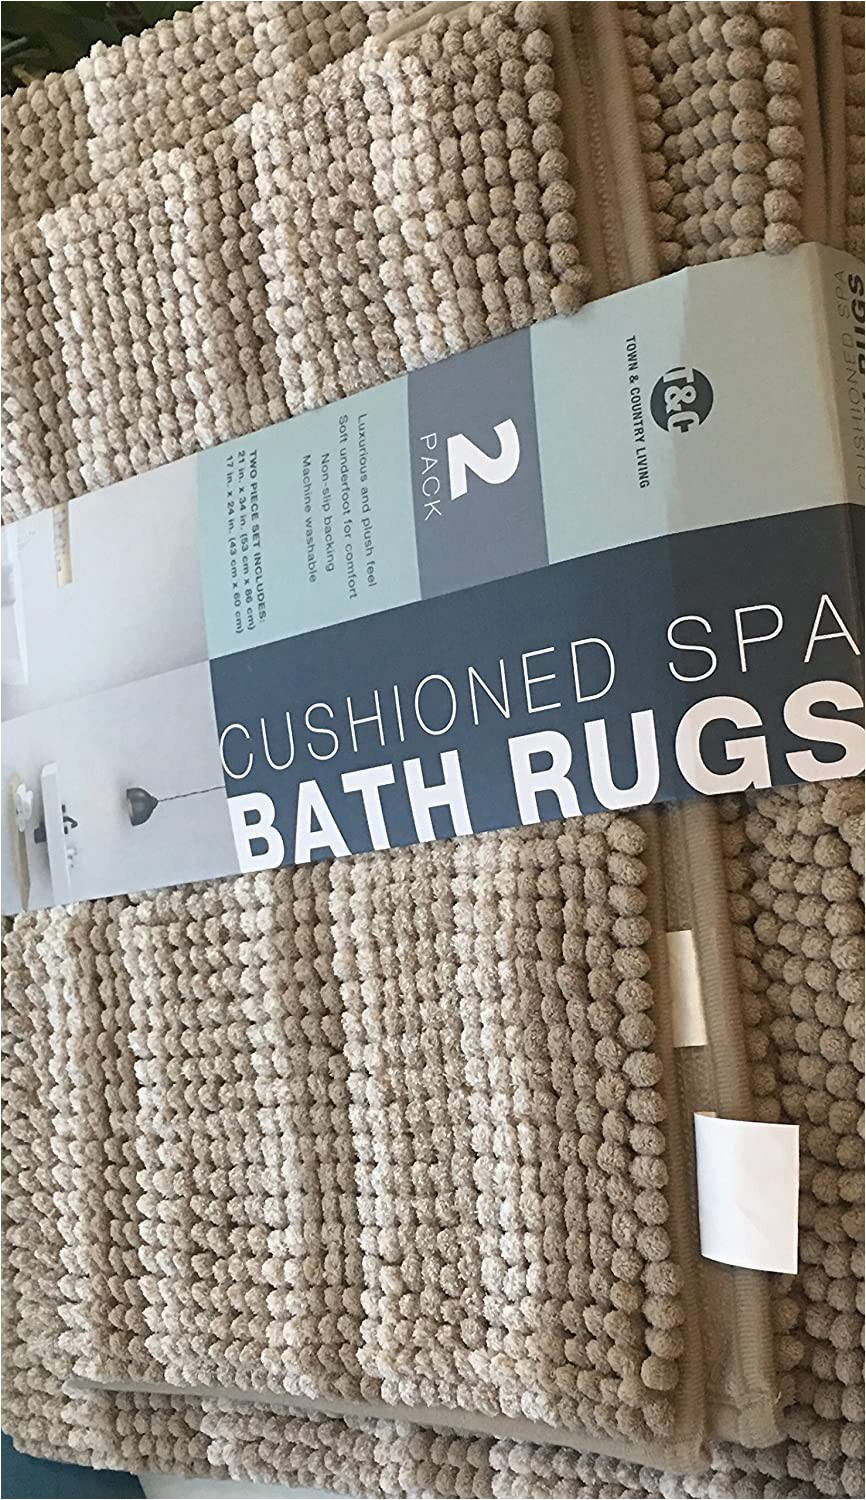 Country Living Bathroom Rugs town & Country Living Cushioned Spa Bath Rugs Brown